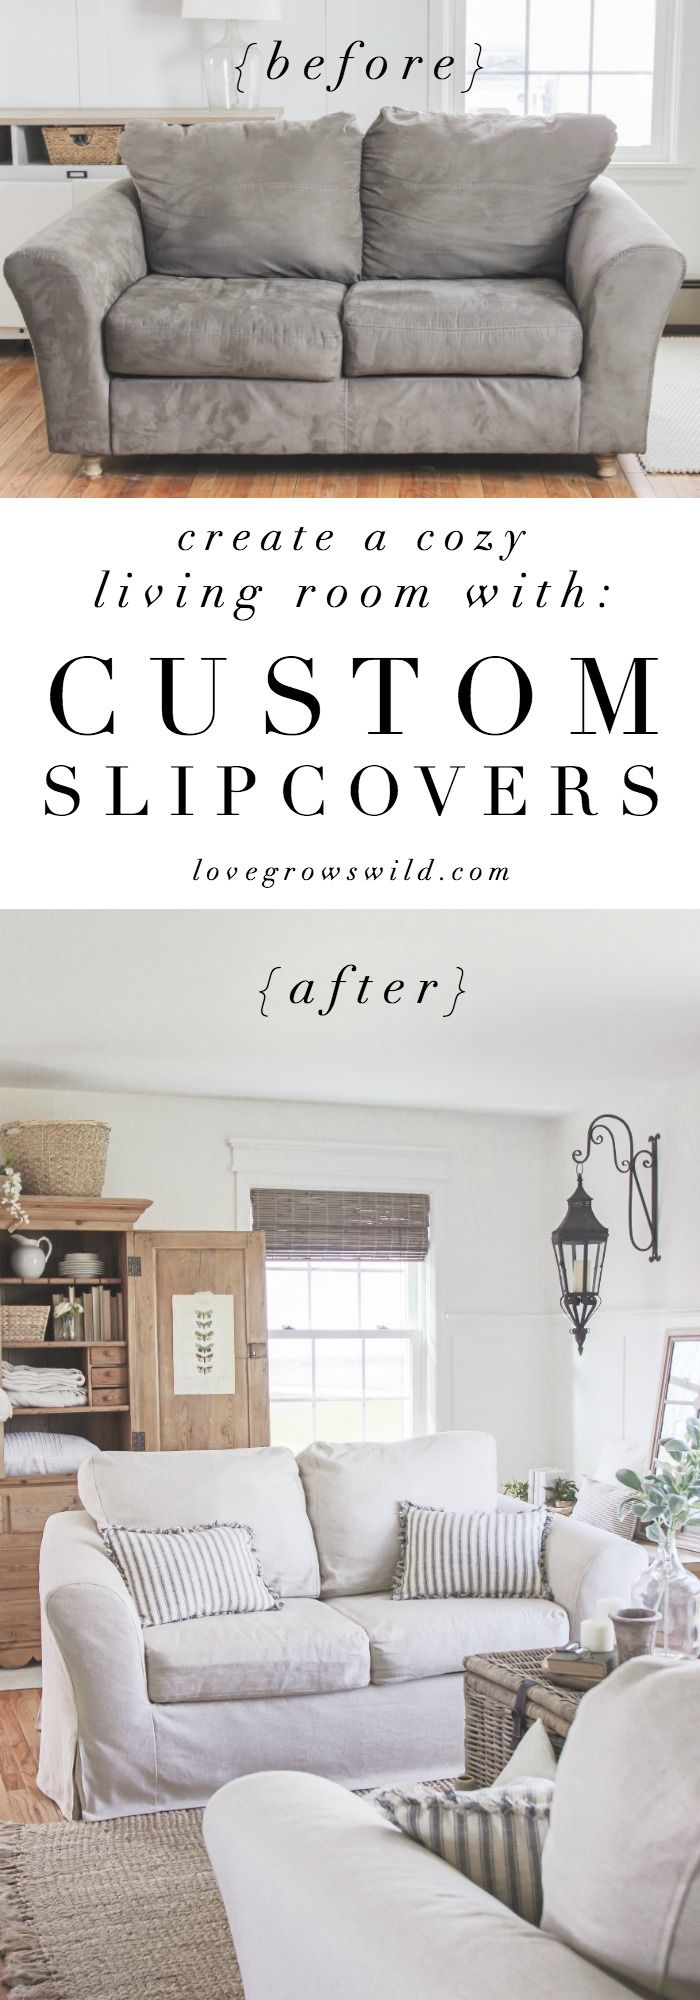 Diy Living Room Chair Cover West Elm Rooms Slipcovers A Comfort Works Review Blogger Home Cozy Farmhouse With Beautiful Linen Slipcovered Sofas See How To